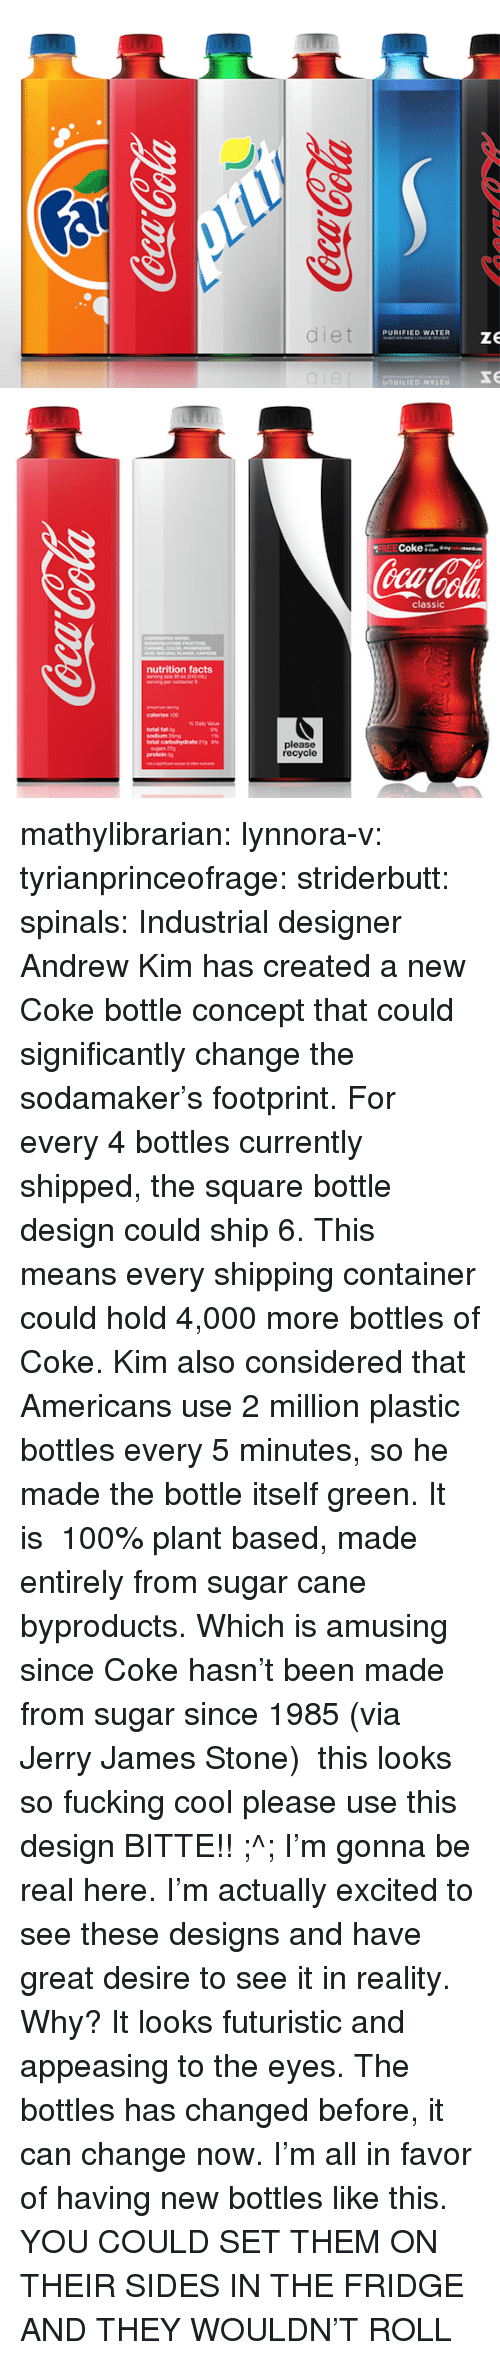 eco friendly: diet  PURIFIED WATER  ze  bnbILIED MYLEH   FREECoke  ola  classic  nutrition facts  erving pe  total fat 0g  sodium 35g  total carbohydrate 279  please  recycle  protein 0g mathylibrarian:  lynnora-v:  tyrianprinceofrage:  striderbutt:  spinals:  Industrial designer Andrew Kim has created a new Coke bottle concept that could significantly change the sodamaker's footprint. For every 4 bottles currently shipped, the square bottle design could ship 6. This means every shipping container could hold 4,000 more bottles of Coke.Kim also considered that Americans use 2 million plastic bottles every 5 minutes, so he made the bottle itself green. It is 100% plant based, made entirely from sugar cane byproducts. Which is amusing since Coke hasn't been made from sugar since 1985 (via Jerry James Stone)  this looks so fucking cool please use this design  BITTE!! ;^;  I'm gonna be real here. I'm actually excited to see these designs and have great desire to see it in reality. Why? It looks futuristic and appeasing to the eyes. The bottles has changed before, it can change now. I'm all in favor of having new bottles like this.   YOU COULD SET THEM ON THEIR SIDES IN THE FRIDGE AND THEY WOULDN'T ROLL